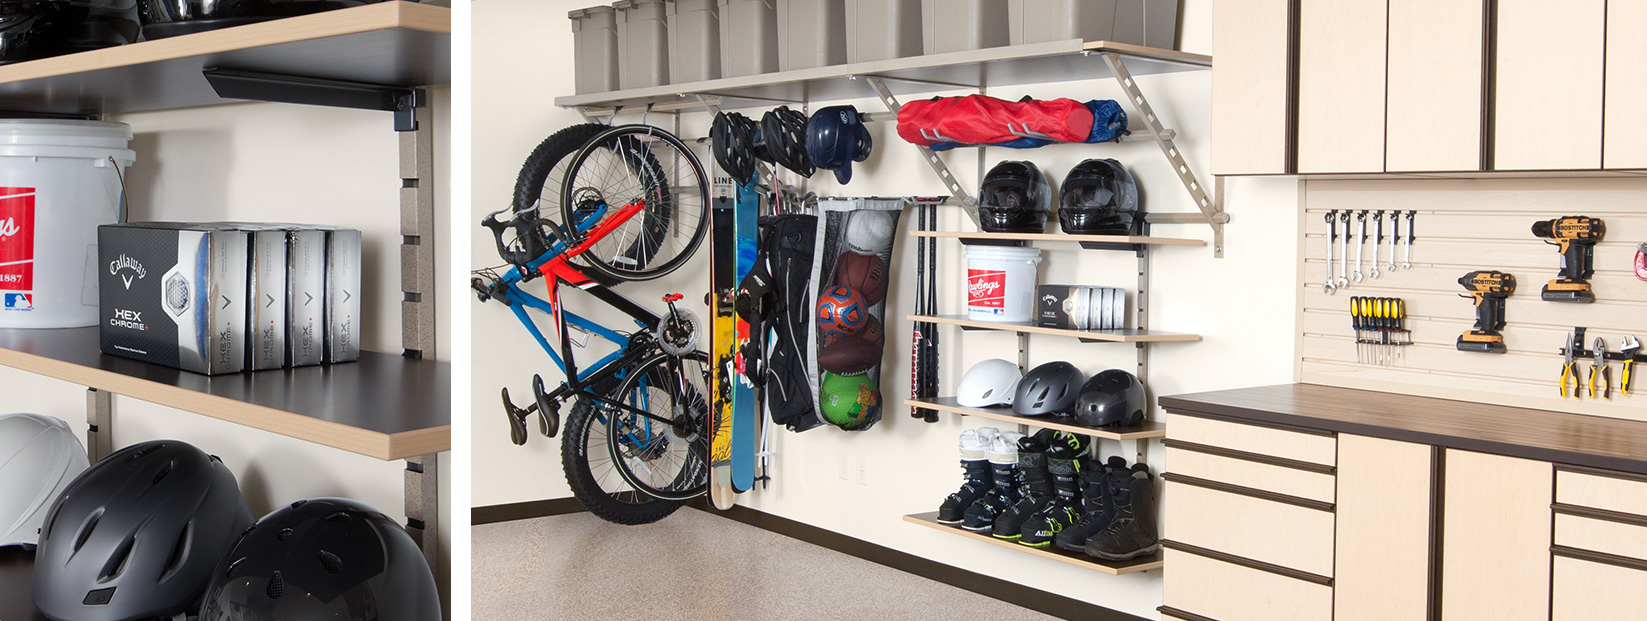 Garage Shelving System Palm Beach